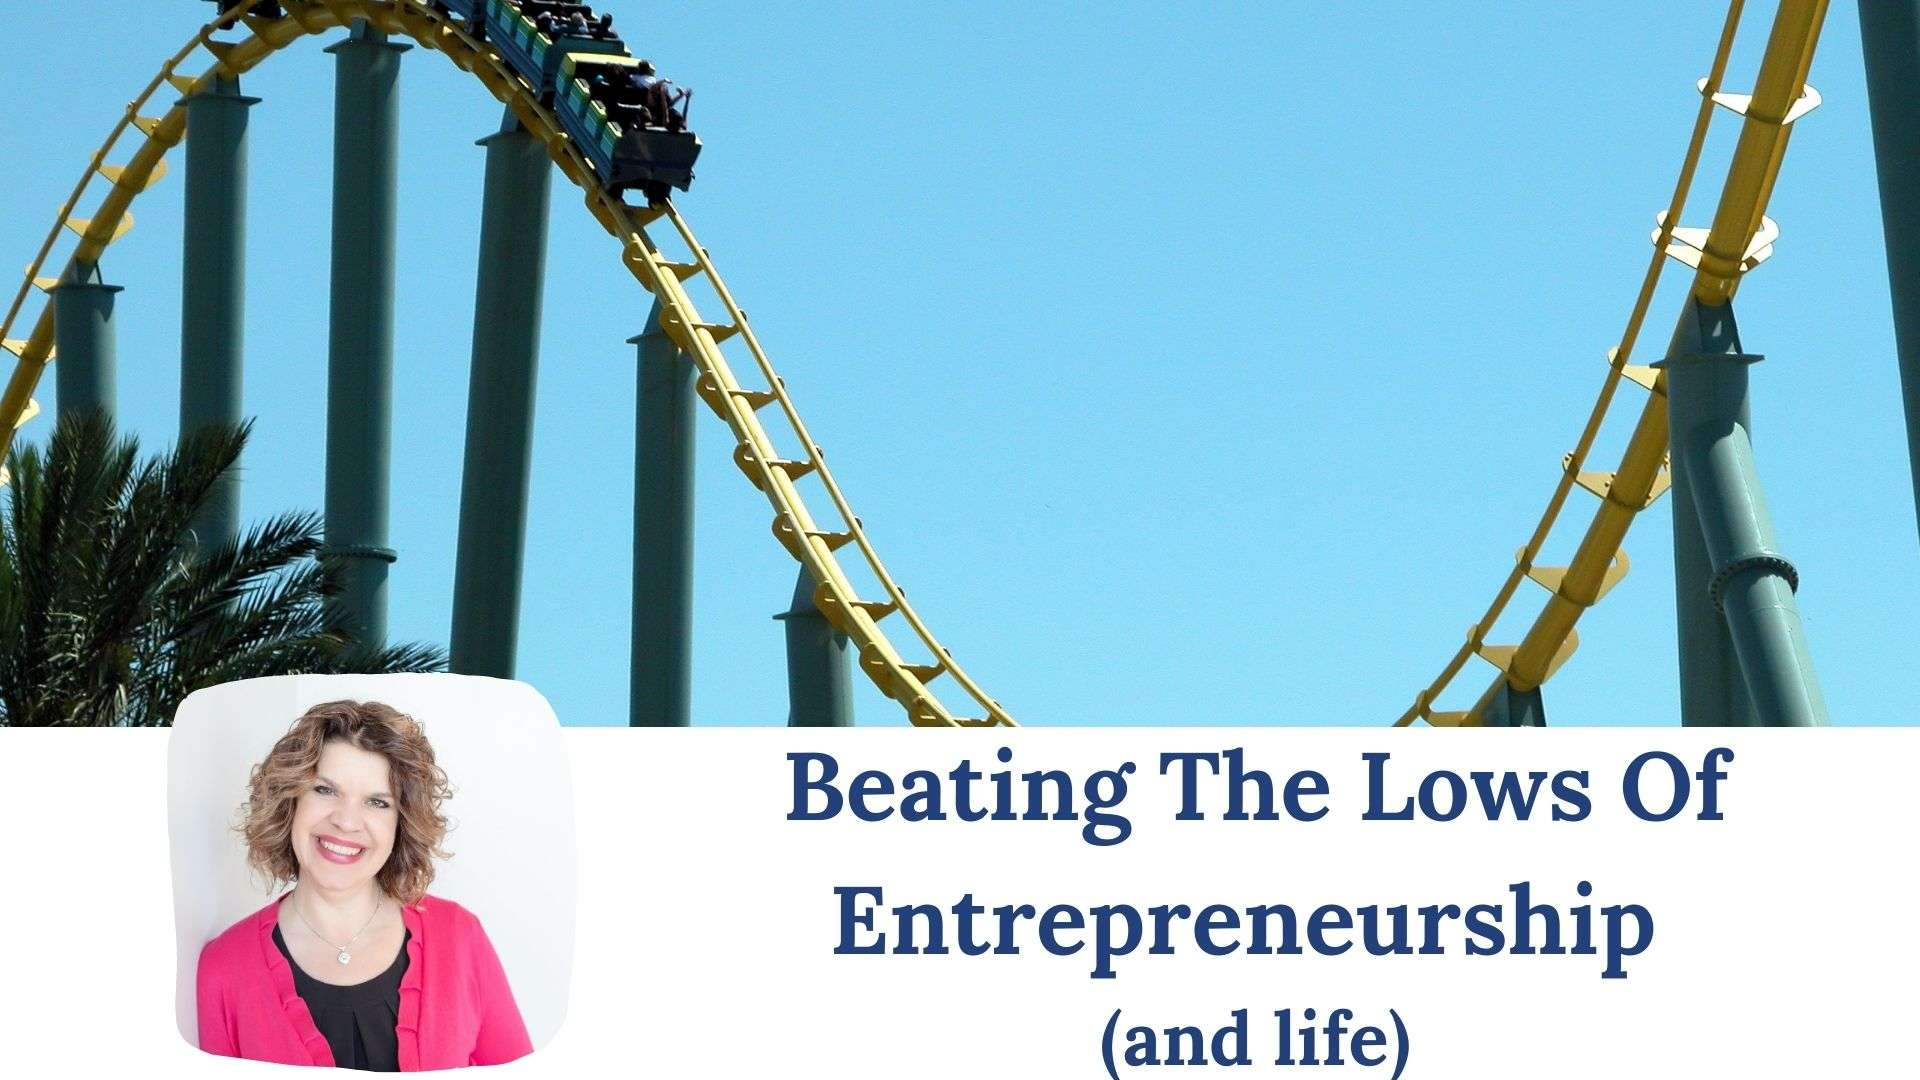 Beating the Lows of Entrepreneurship and Life